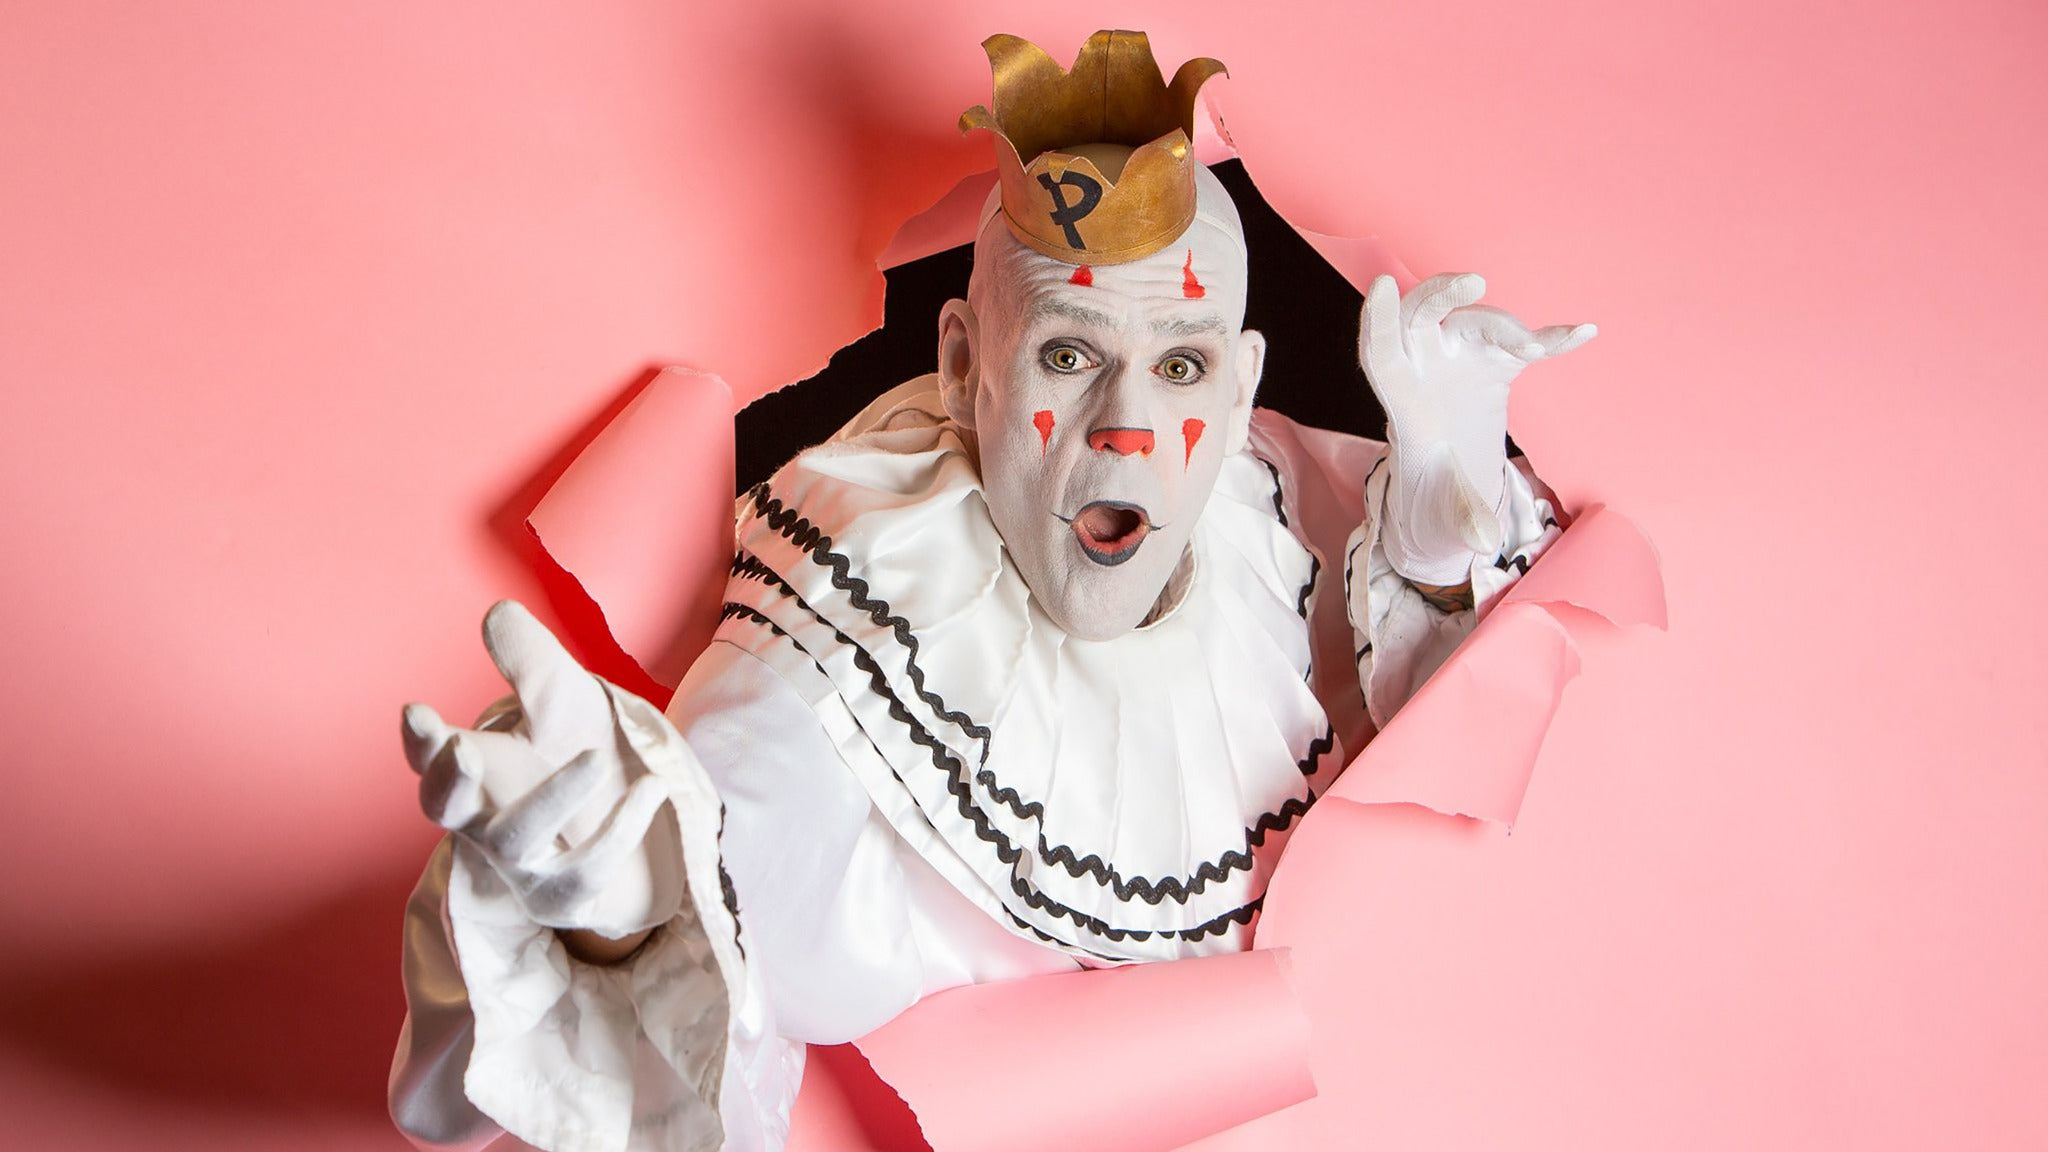 Puddles Pity Party: UNSEQUESTERED TOUR